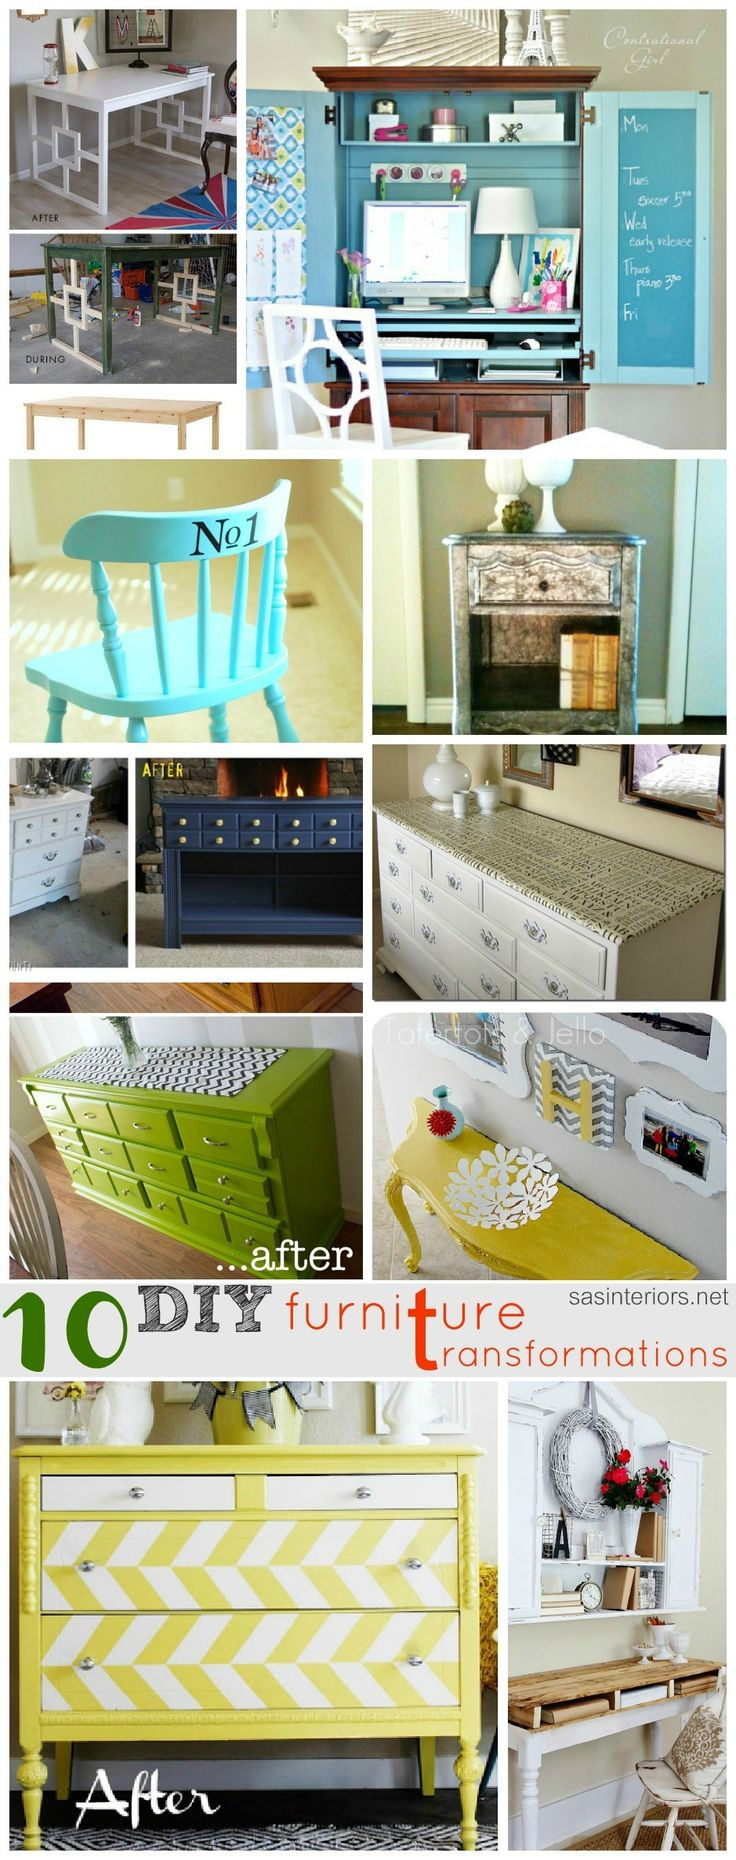 982 best refurbished furniture images on pinterest furniture refinishing repurposed furniture - Do it yourself furniture ideas ...